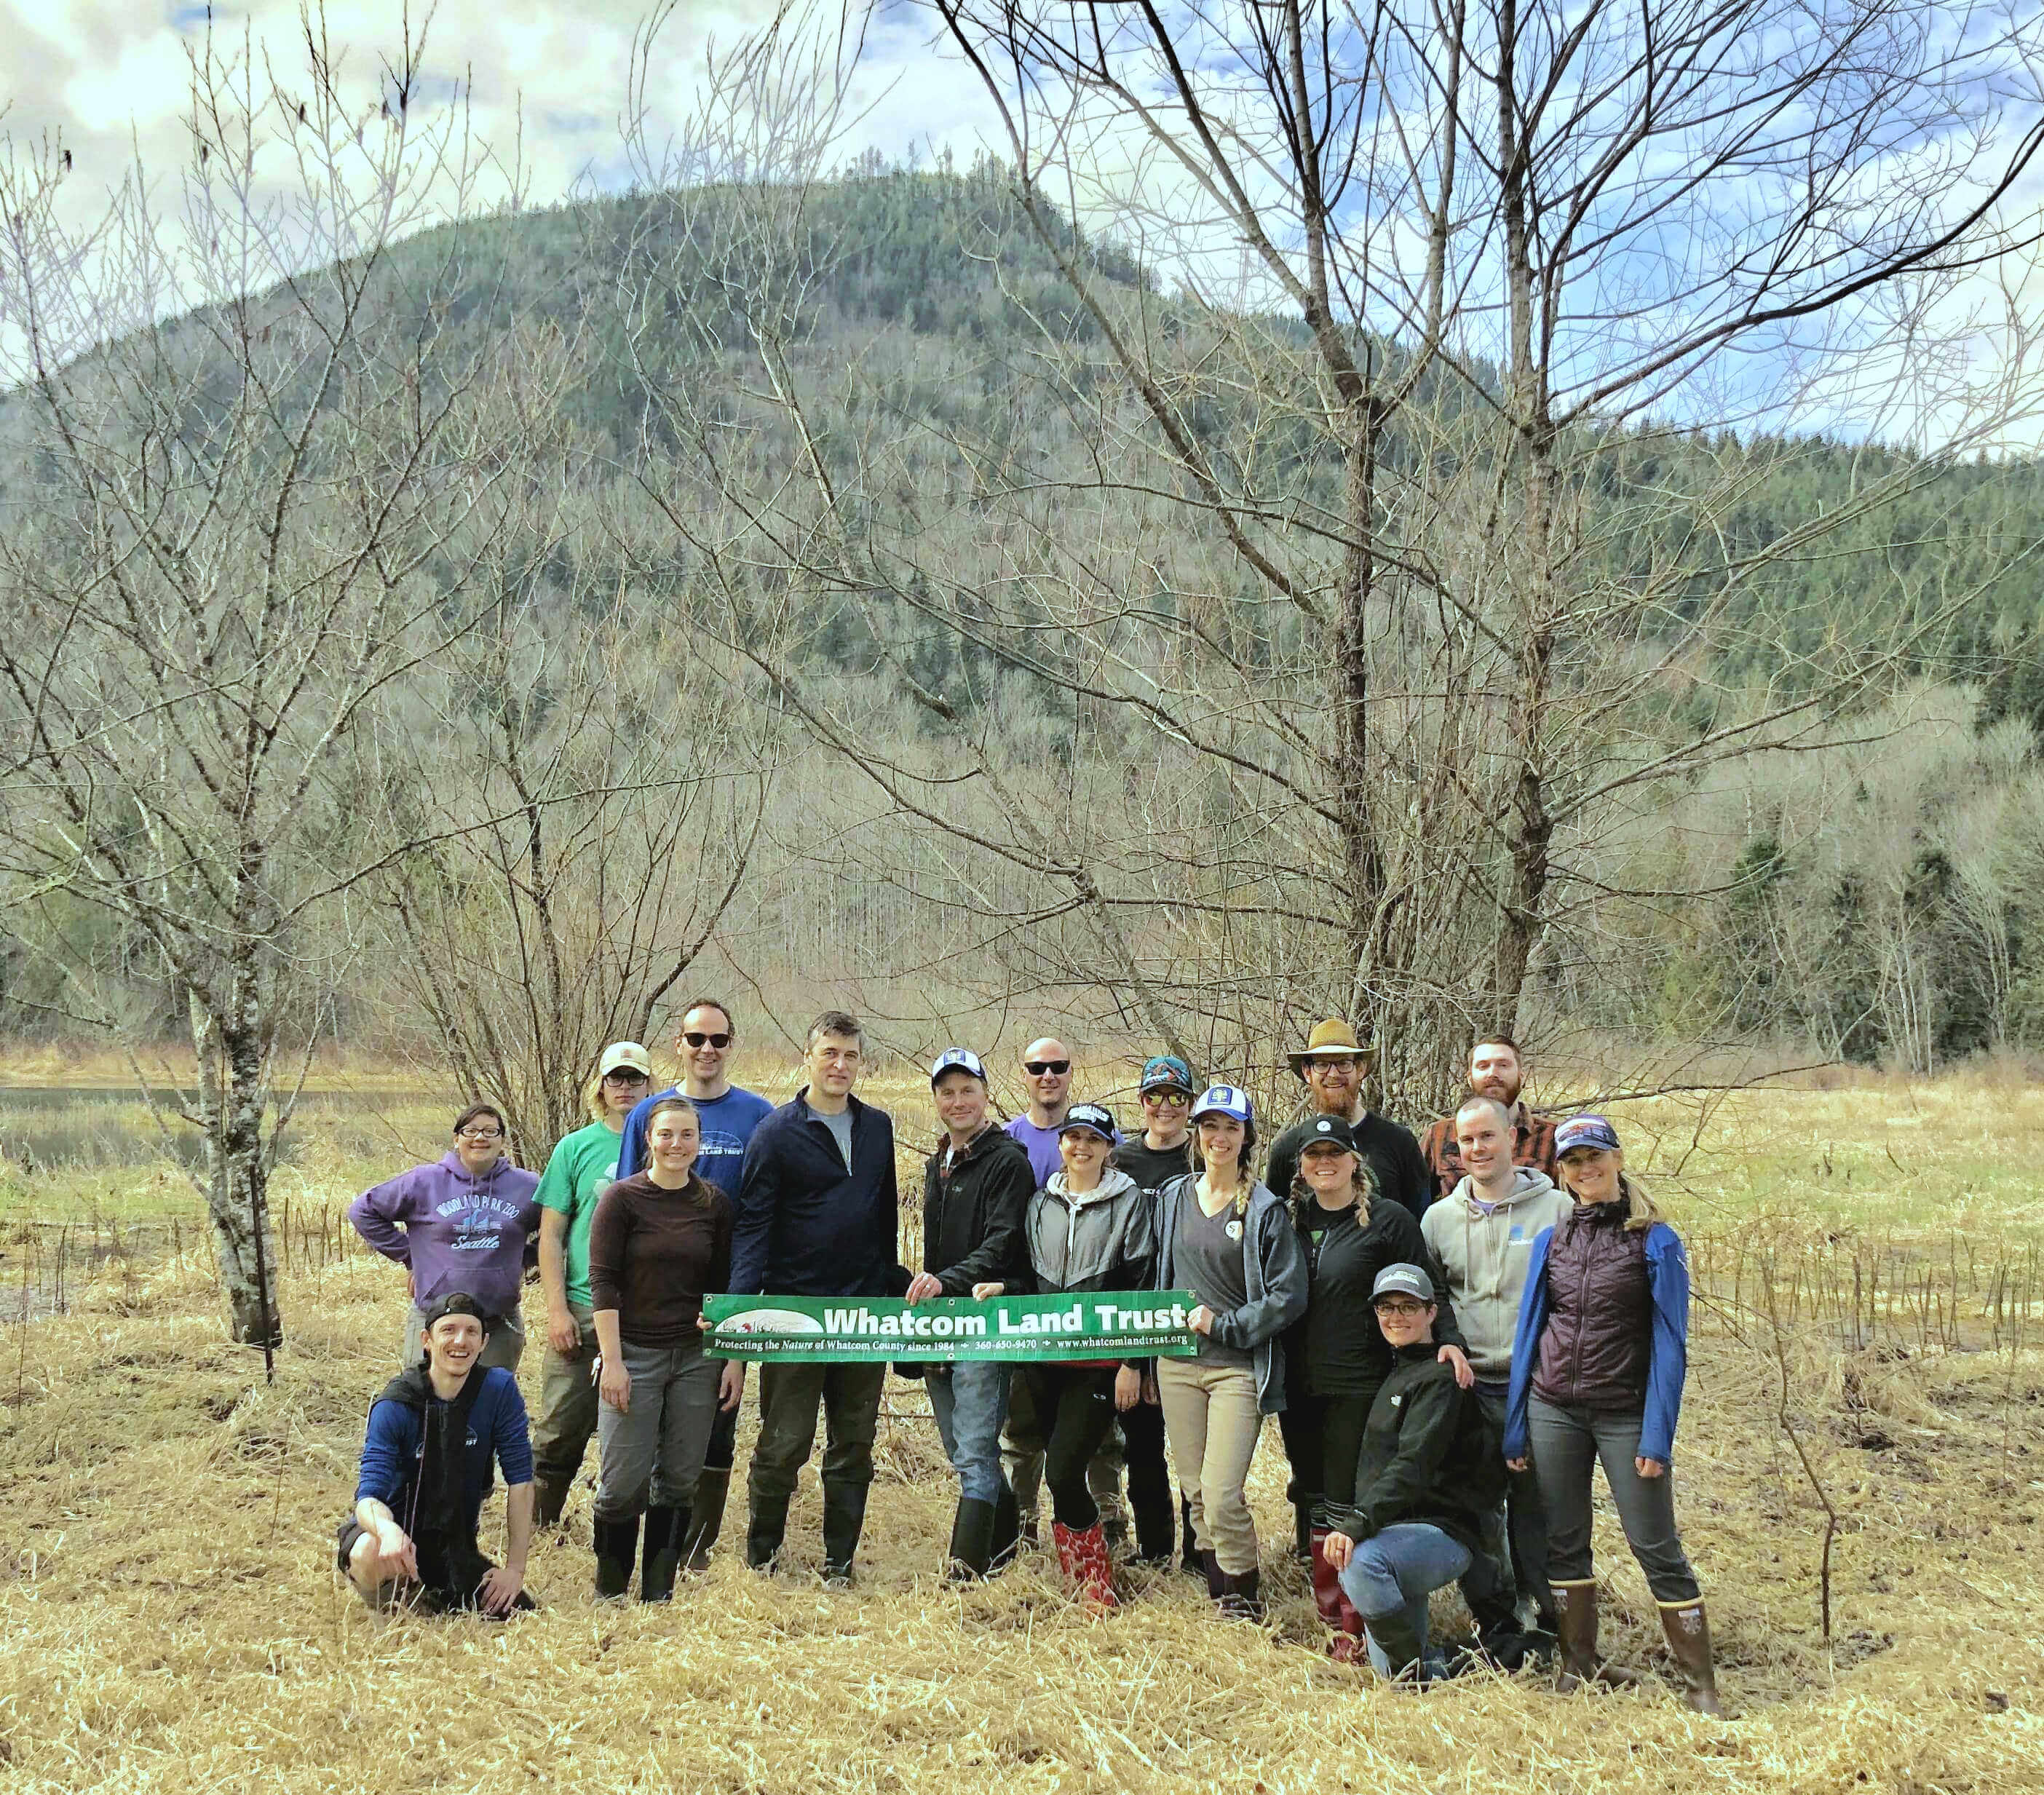 Whatcom Land Trust October 2019